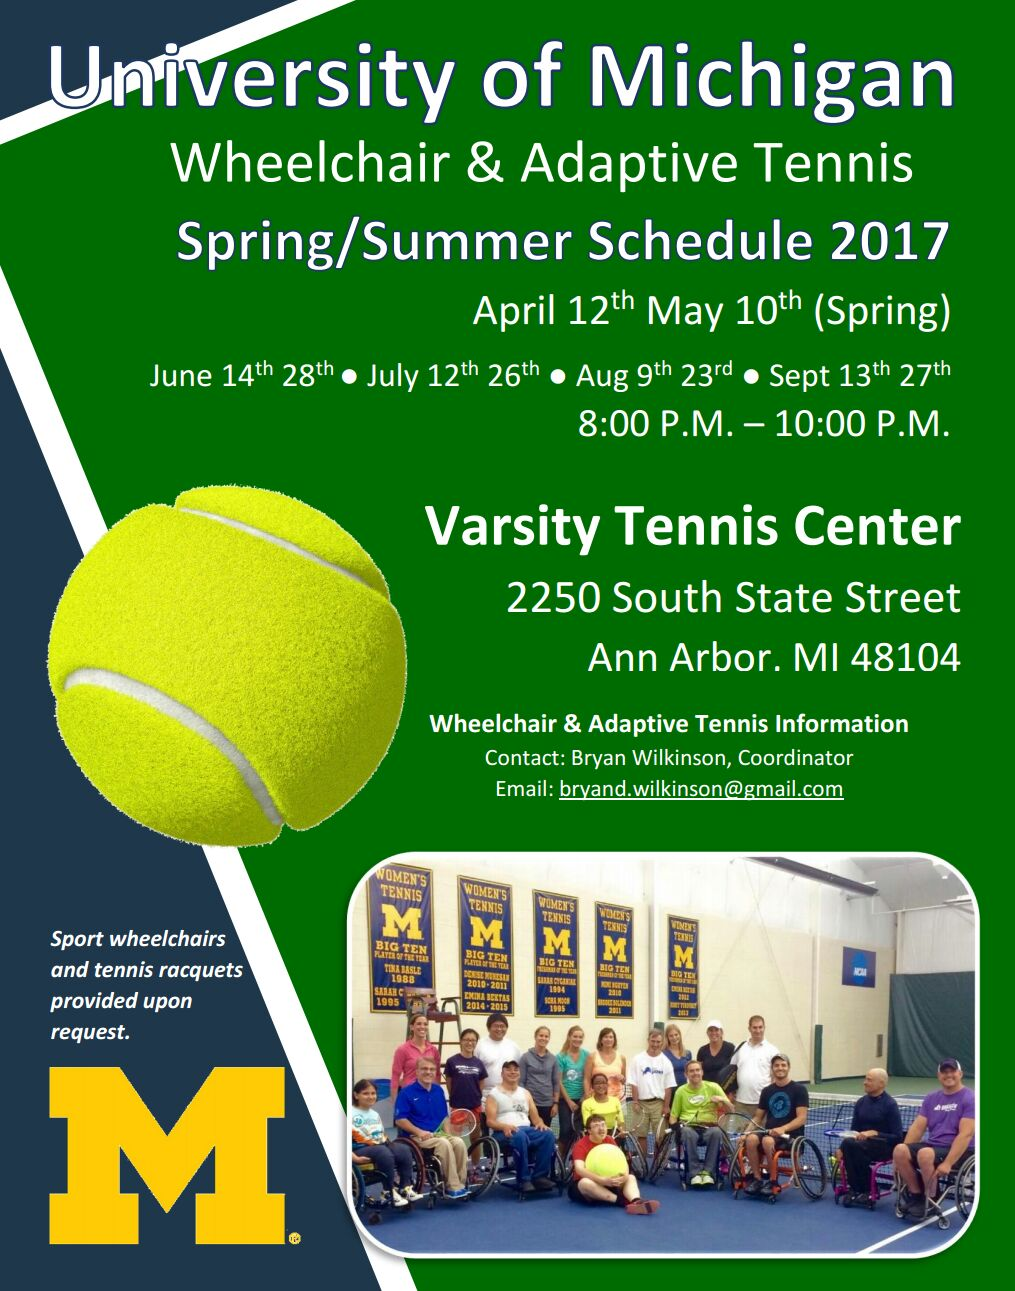 U-M Wheelchair and adaptive tennis schedule